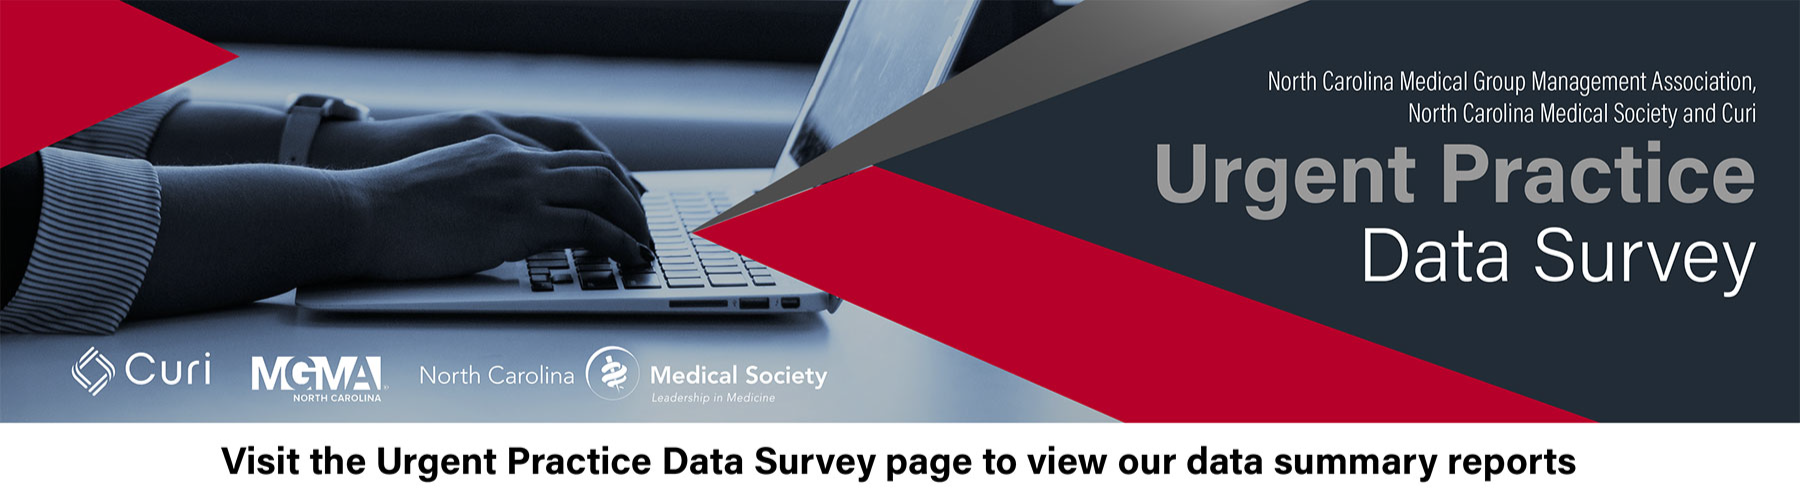 2020 Urgent Practice Data Survey